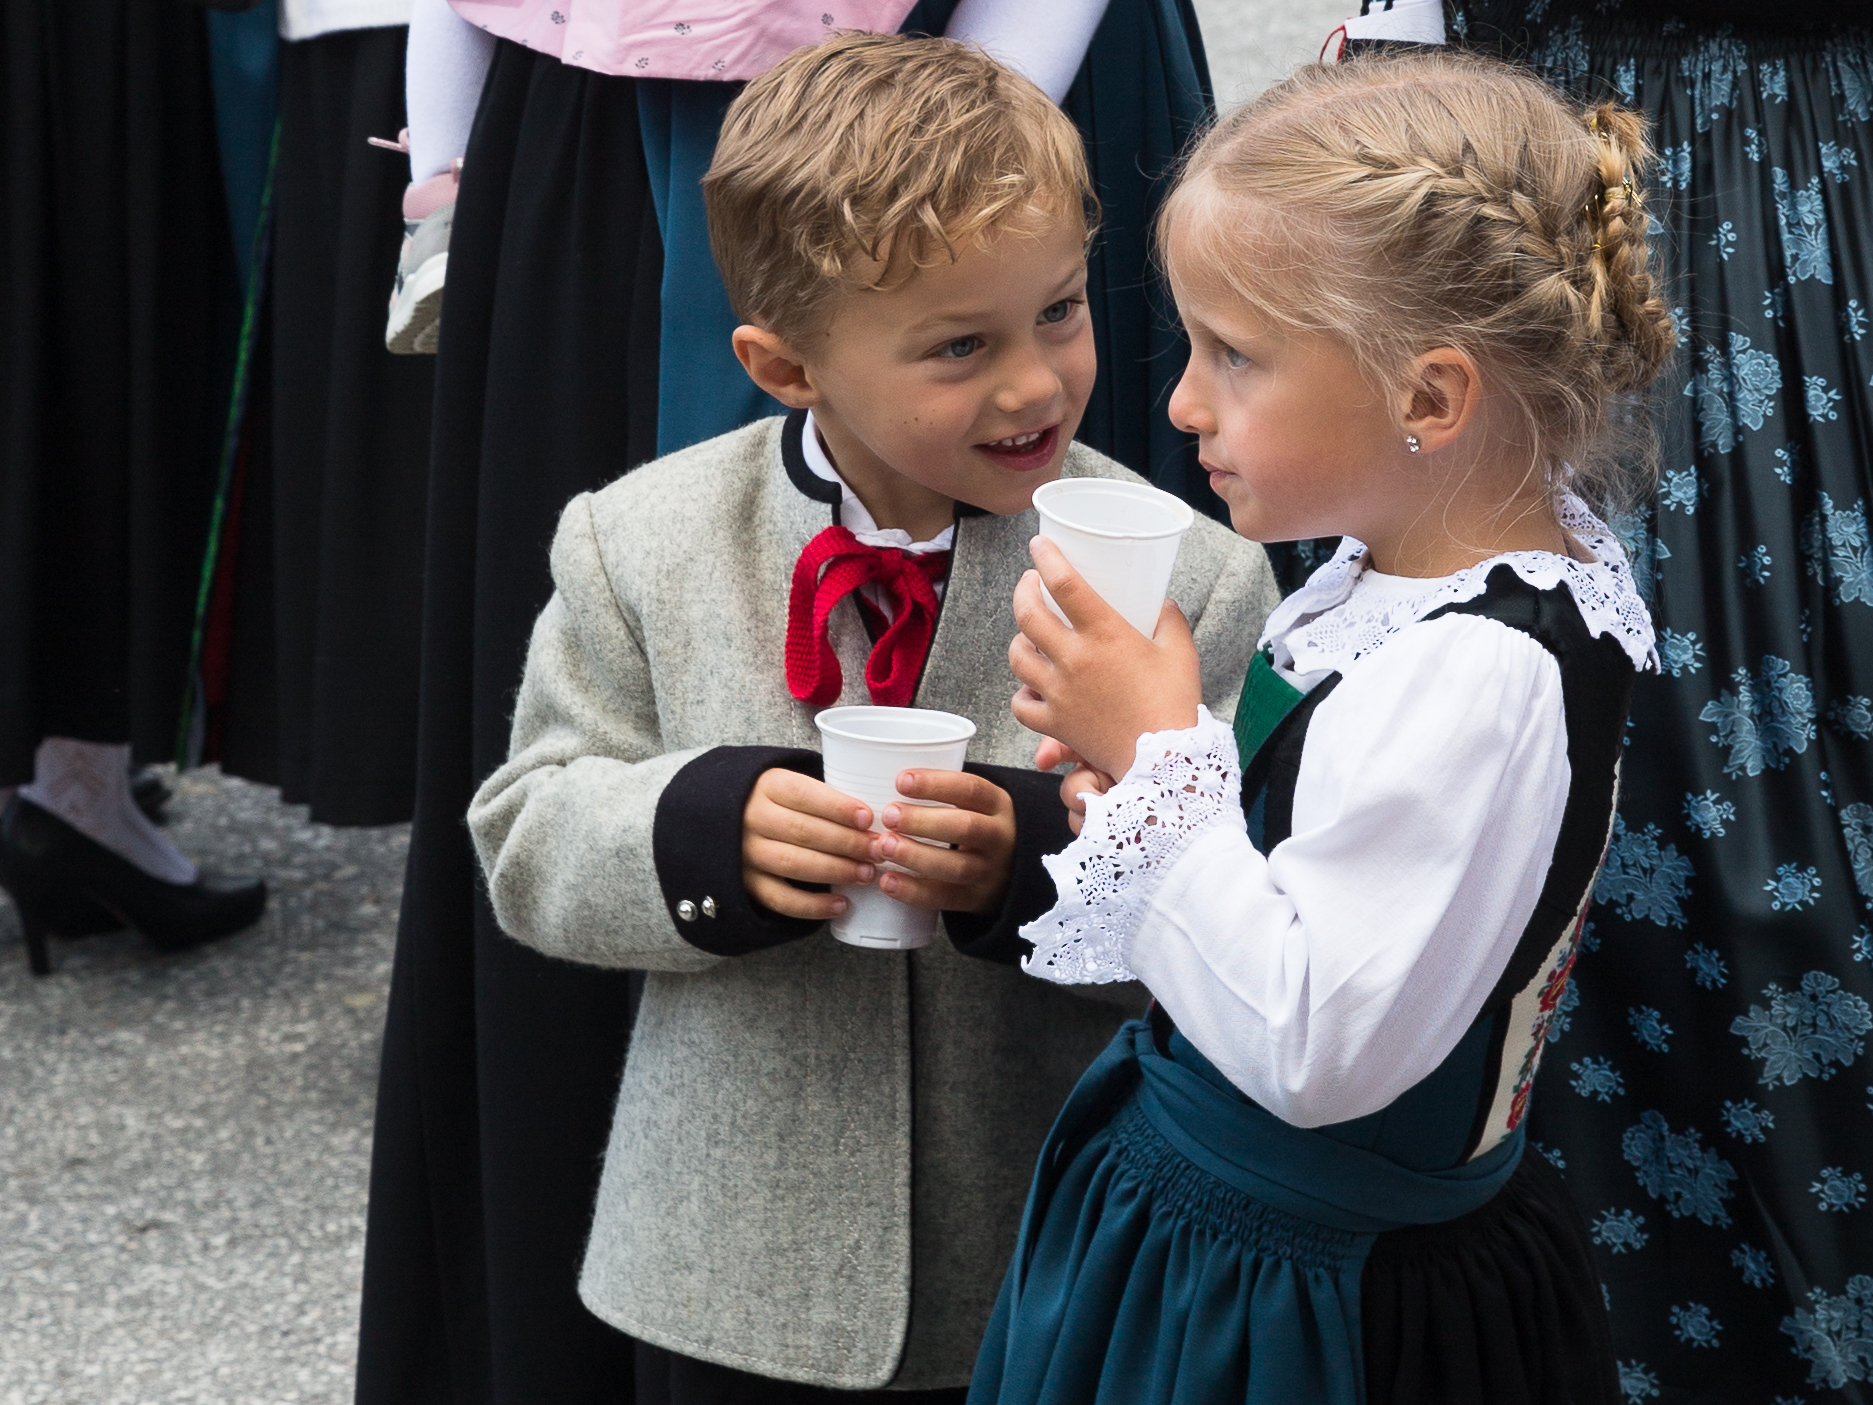 Two young Austrians in traditional dress, Alpbach, Tyrol, Austria